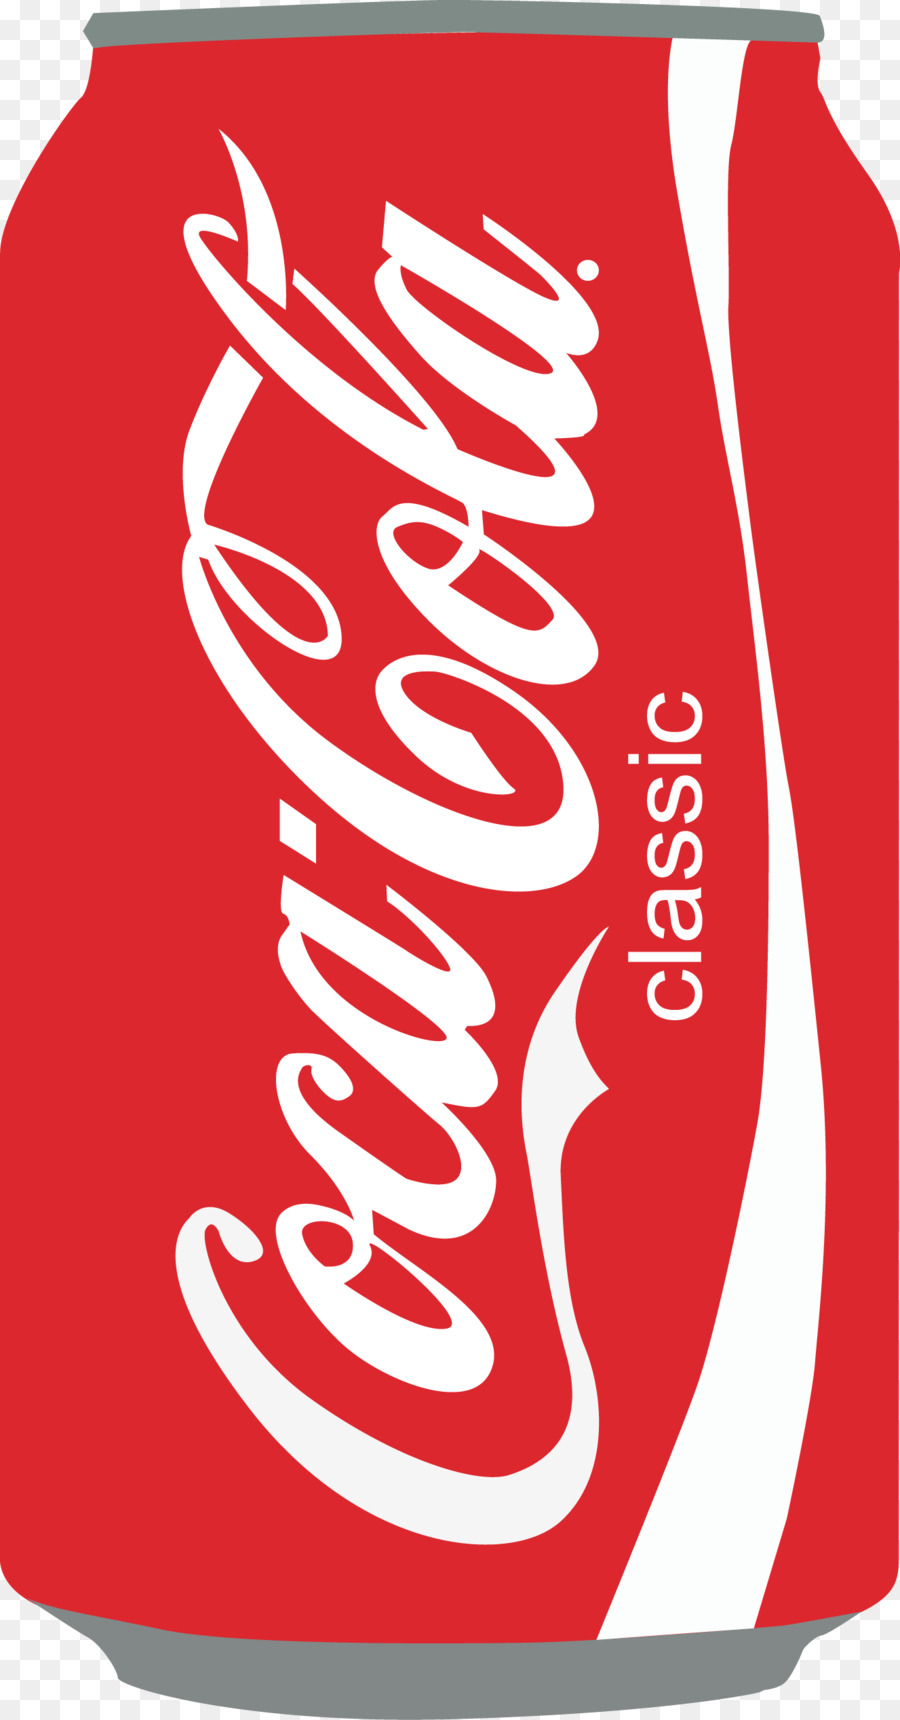 Coca cola can clipart image black and white library Coke Can Background png download - 900*1720 - Free ... image black and white library